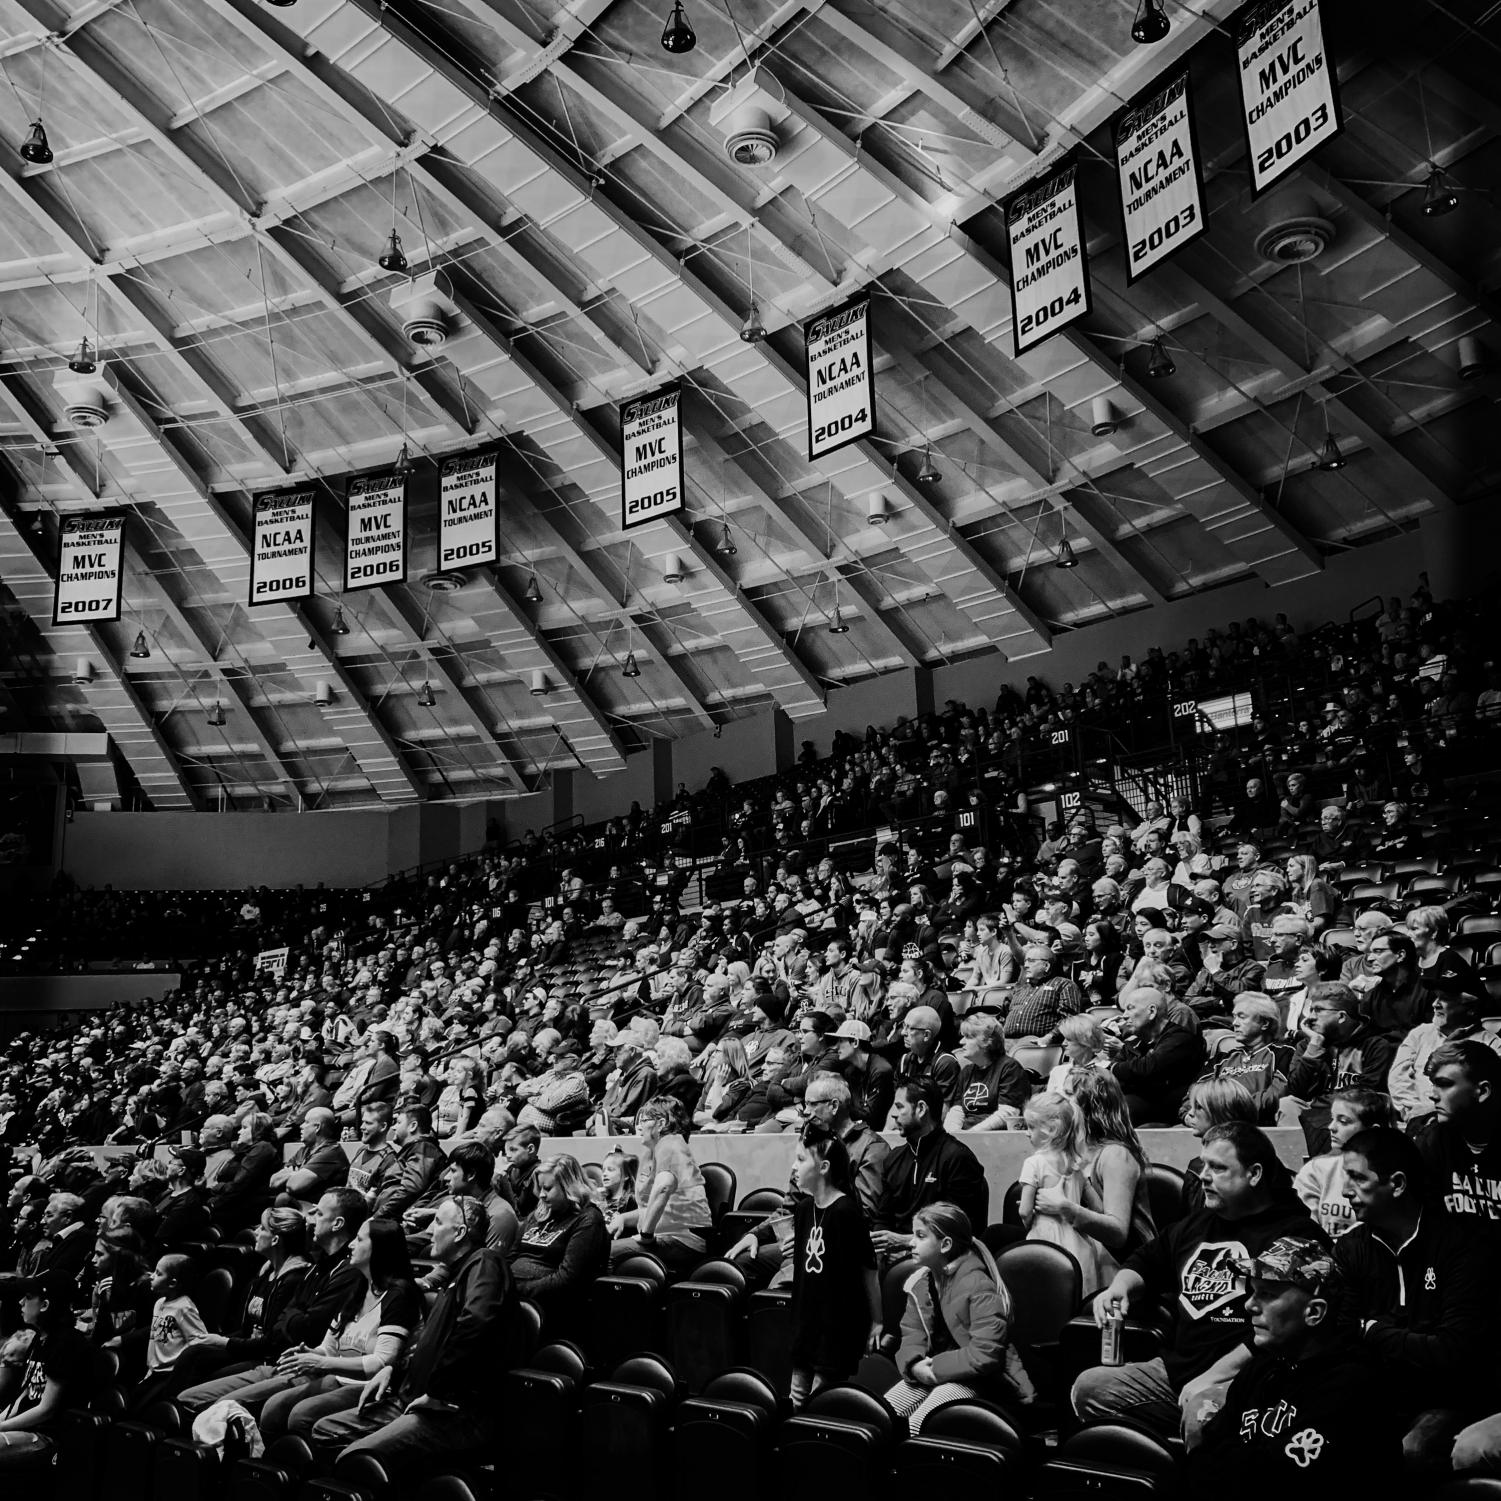 Fans+watch+the+game+on+Sunday%2C+Feb.+24%2C+2019%2C+during+a+matchup+between+the+Southern+Illinois+Salukis+and+the+Loyola+Ramblers+at+SIU+Arena.